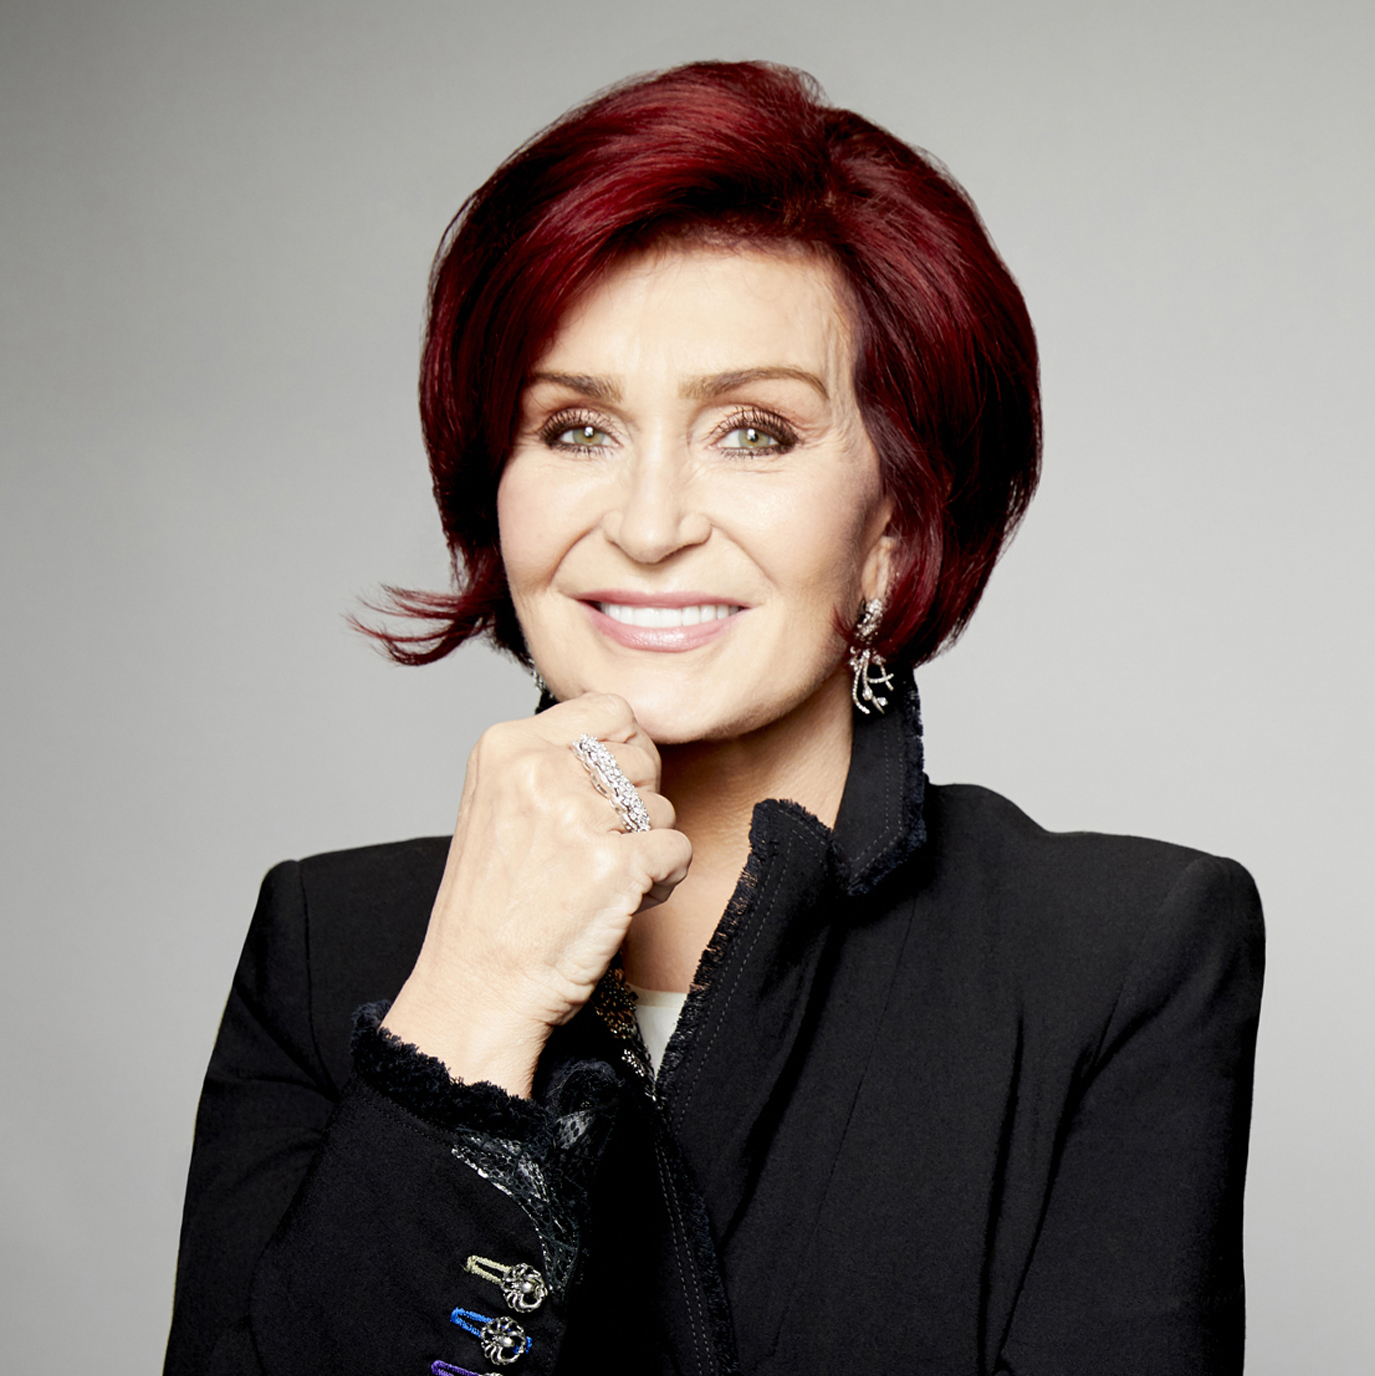 """Sharon Osbourne, pictured before her facelift, returned for a new season of """"The Talk"""" with a new look. (Photo: Art Streiber/CBS via Getty Images)"""